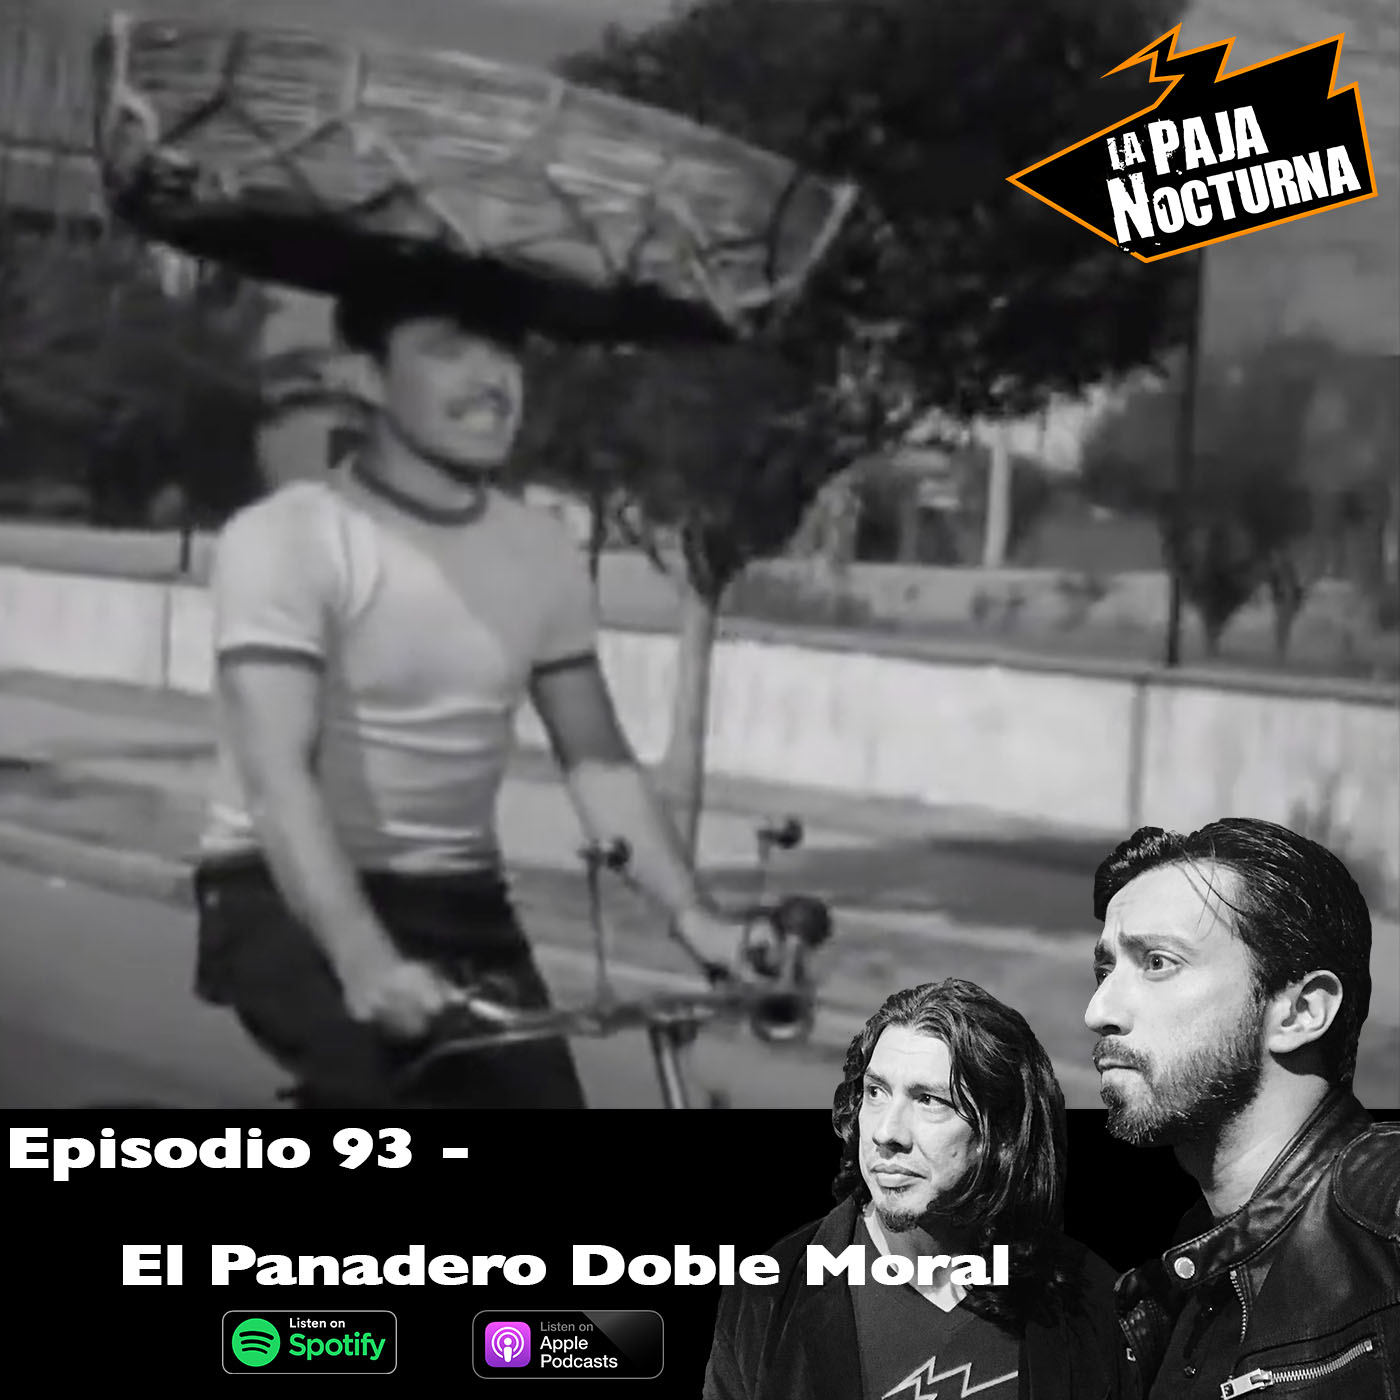 La paja nocturna podcast Episodio 93